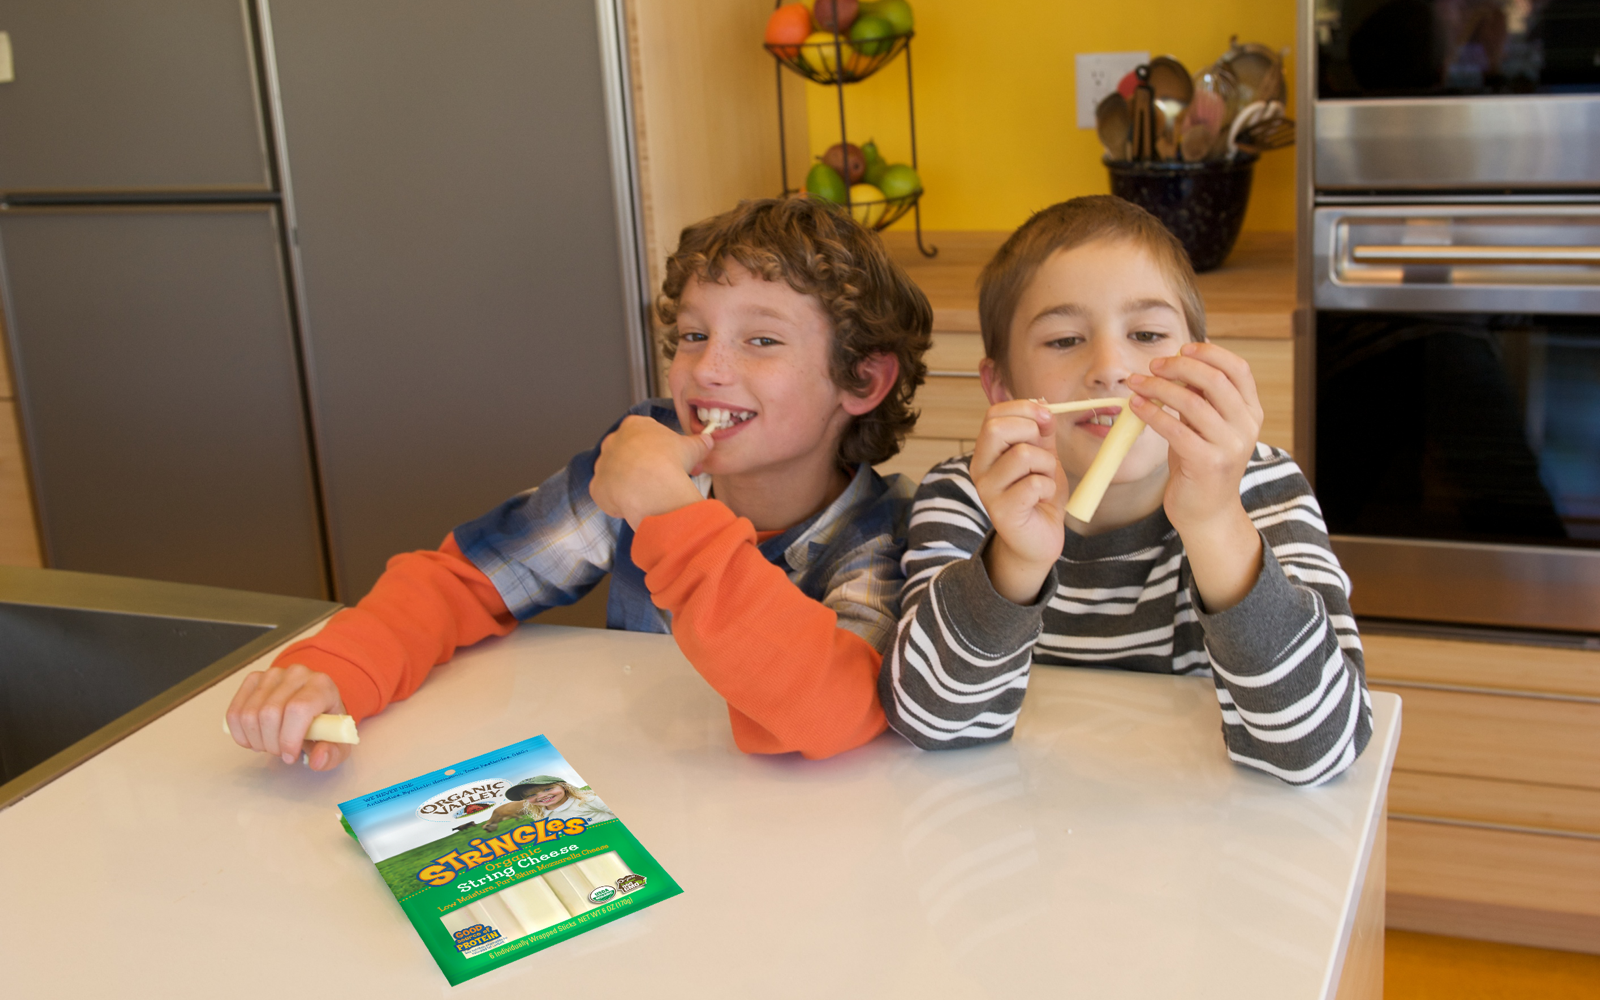 Two boys sitting at a kitchen counter, one smiling at the camera while taking a bite of cheese and the other peeling a stick of string cheese.